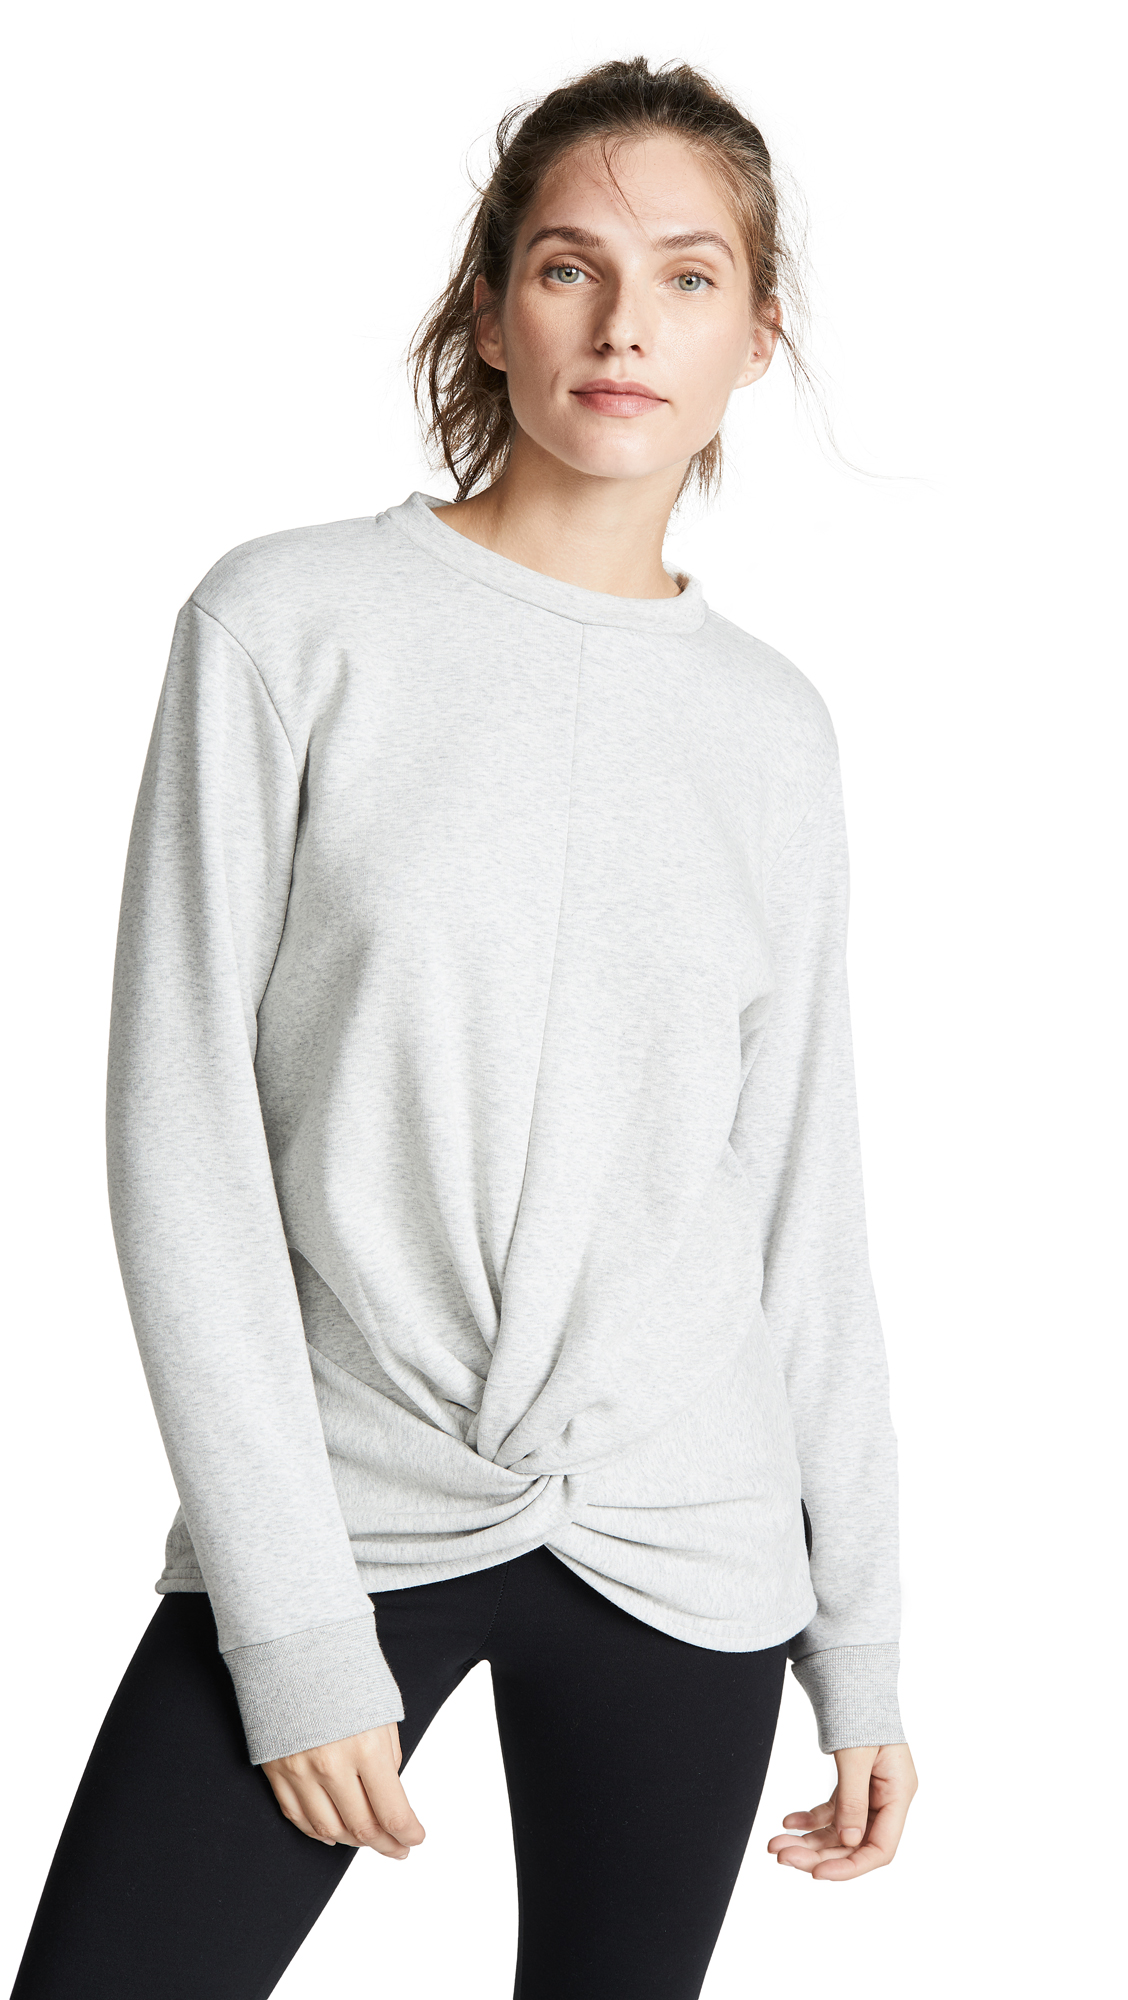 MICHI Farfalla Sweatshirt in Light Heather Grey